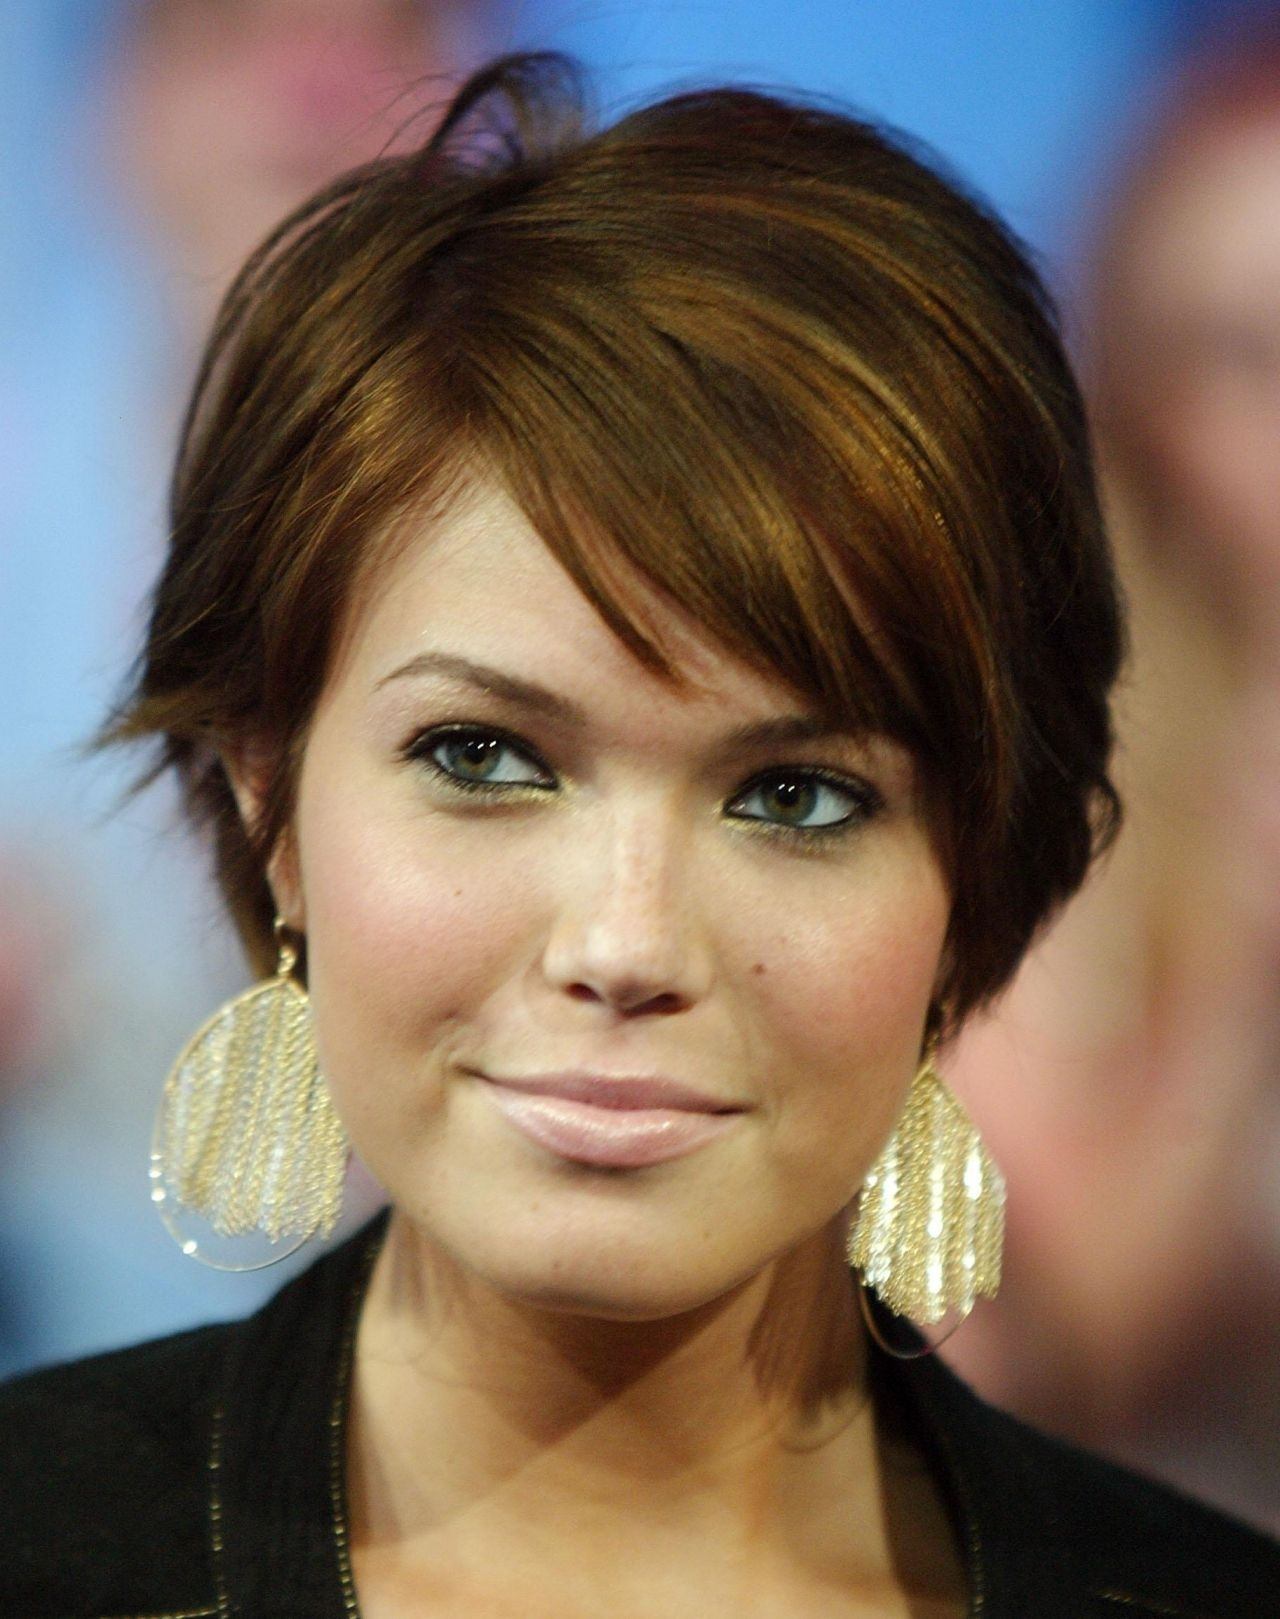 Women: 12 Best Hairstyles For Women Over 40 Haircuts For Fine Thin regarding Haircut For Round Face Over 40